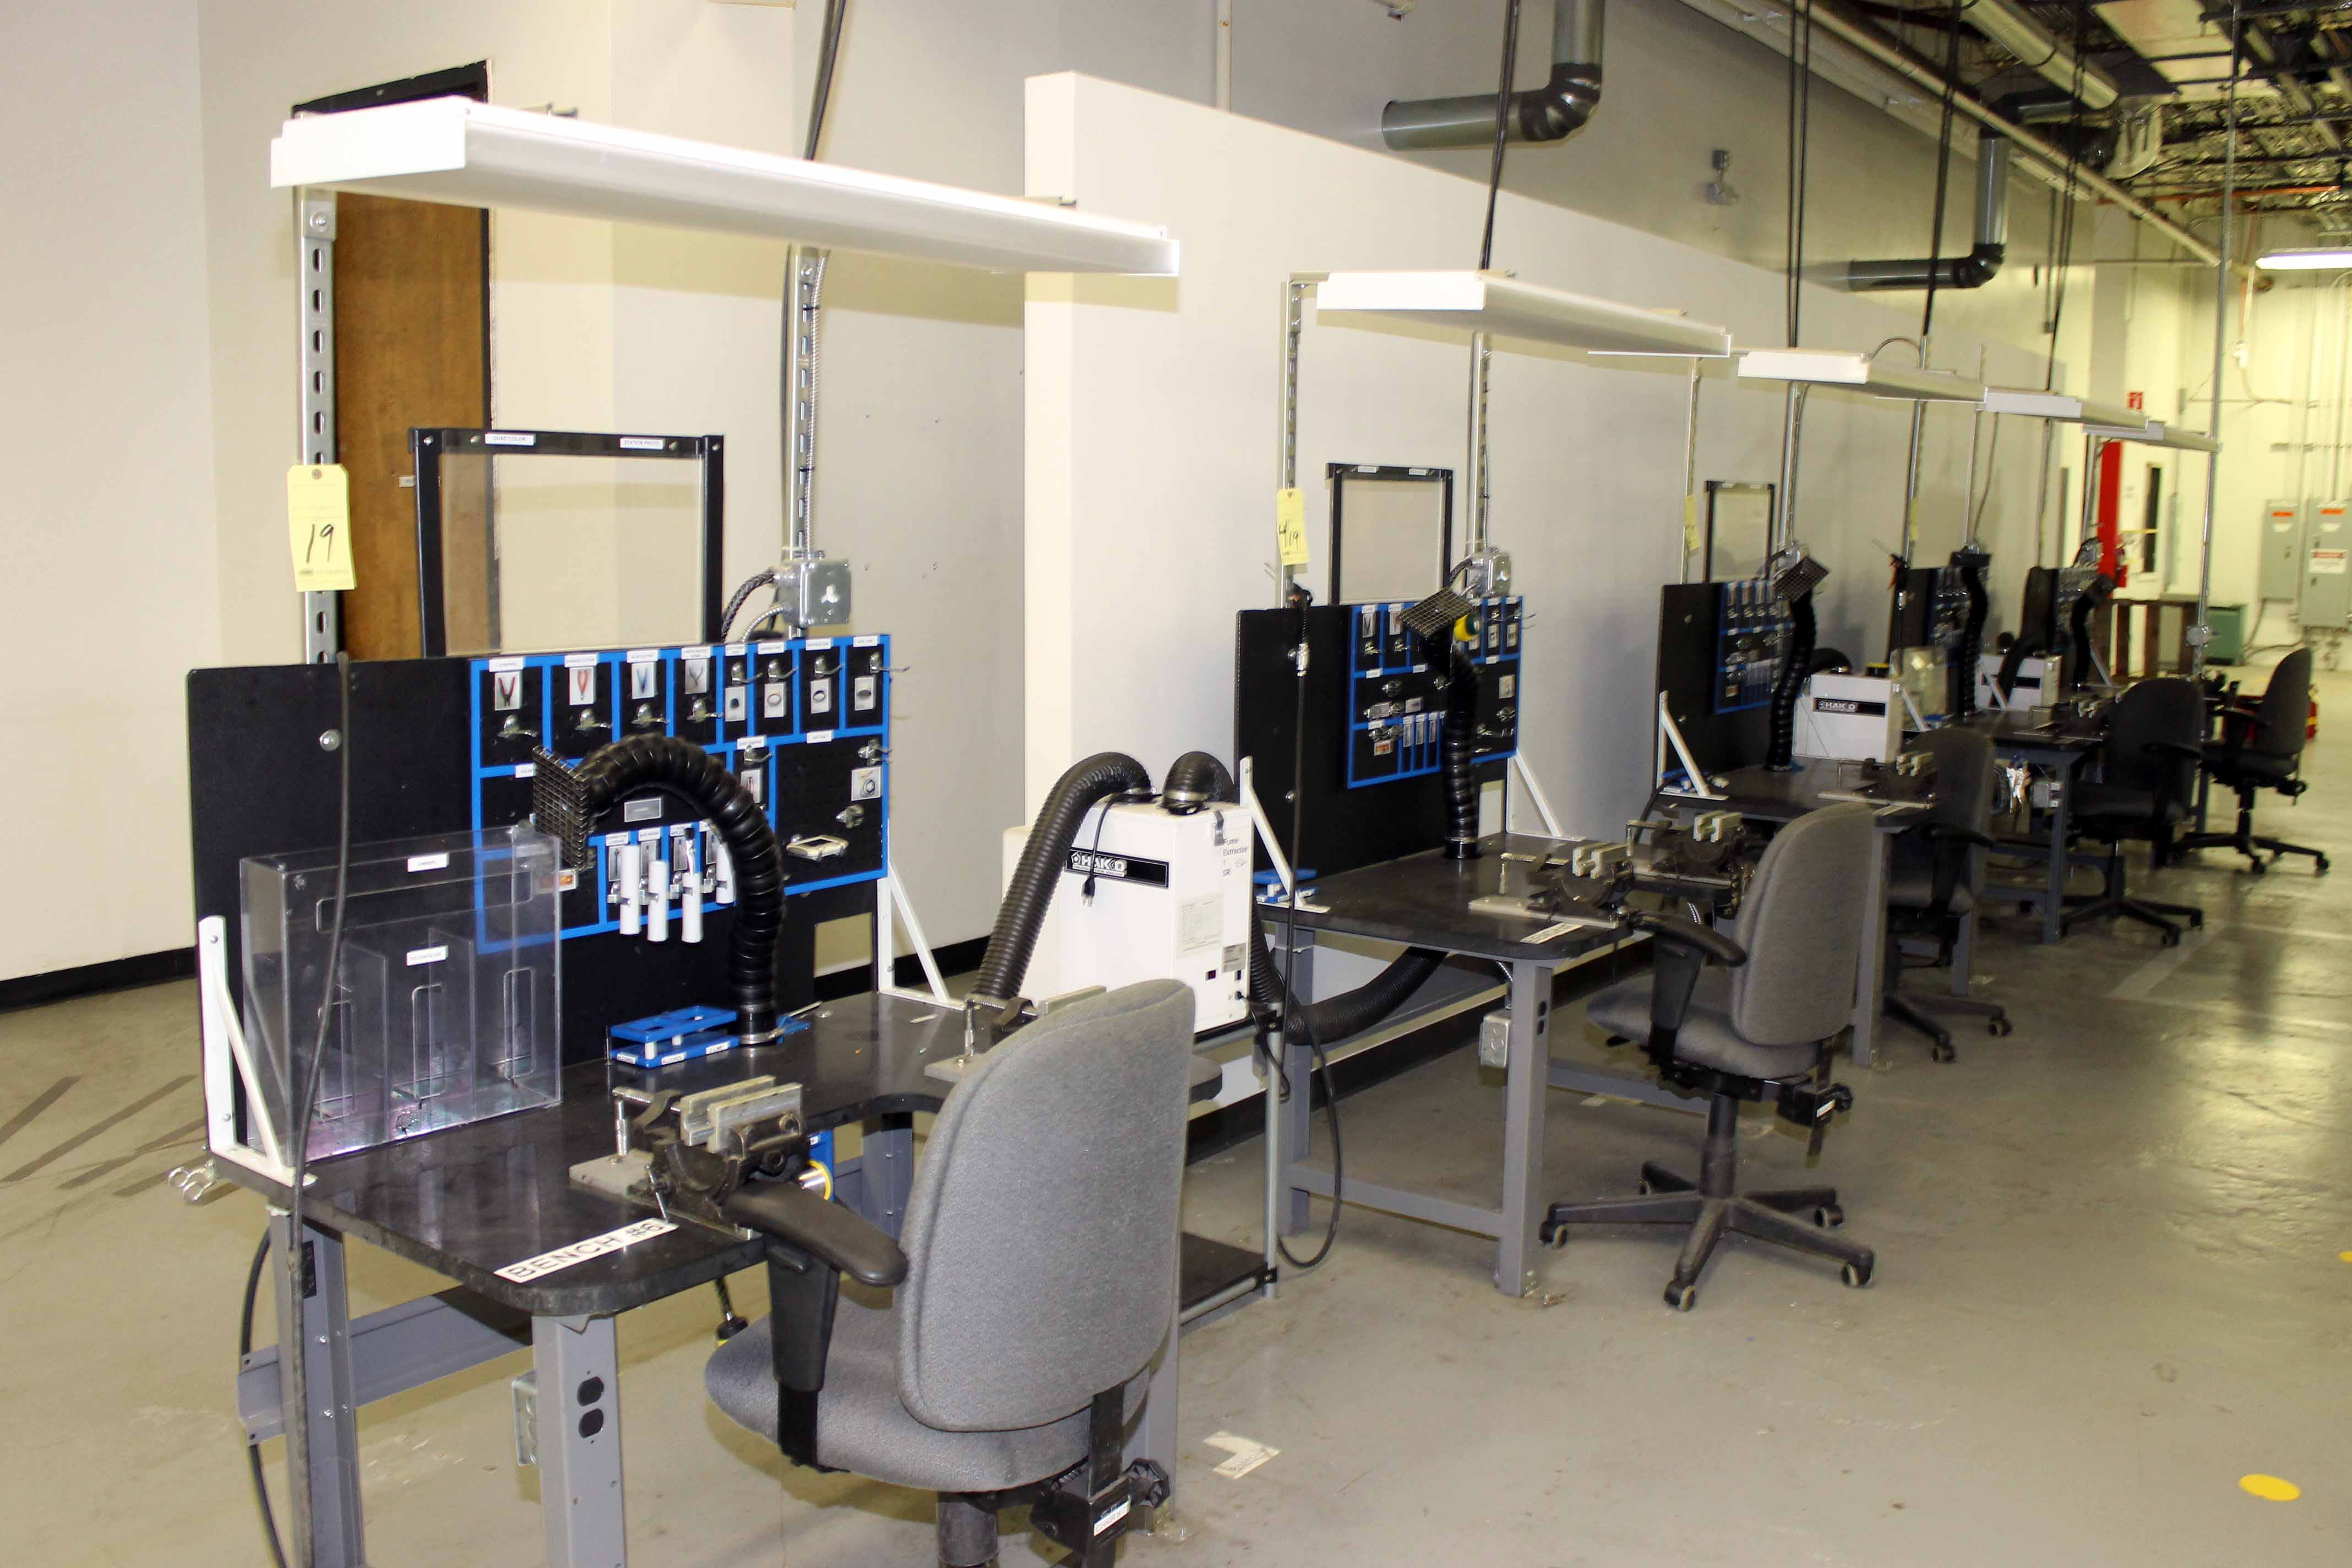 Lot 19 - WORKBENCH ASSEMBLY LINE, (5) Workbenches w/(3) Hako fume extractors & misc. assembly equipment (